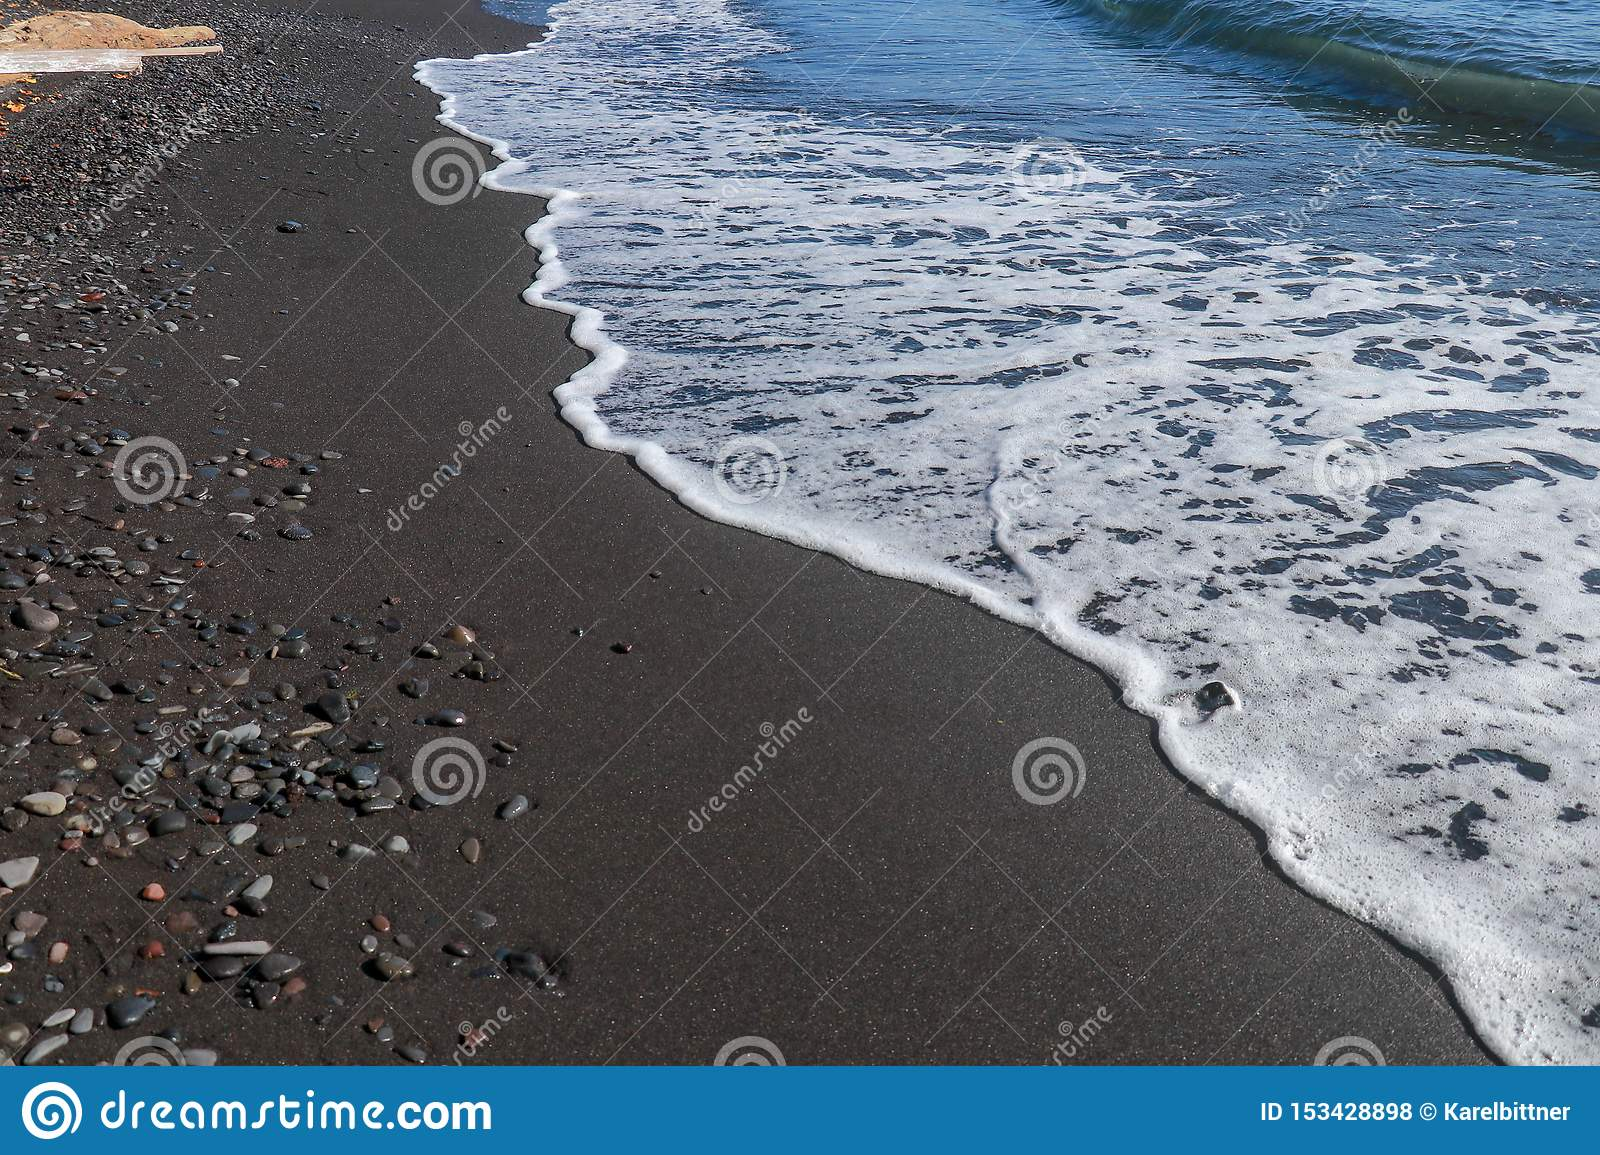 Black Fine Volcanic Sand Beach And Pebbles On Bali Island In Indonesia The Sea Water Reaches The Coast And Turns Into Sea Foam W Stock Photo Image Of Color Seascape 153428898